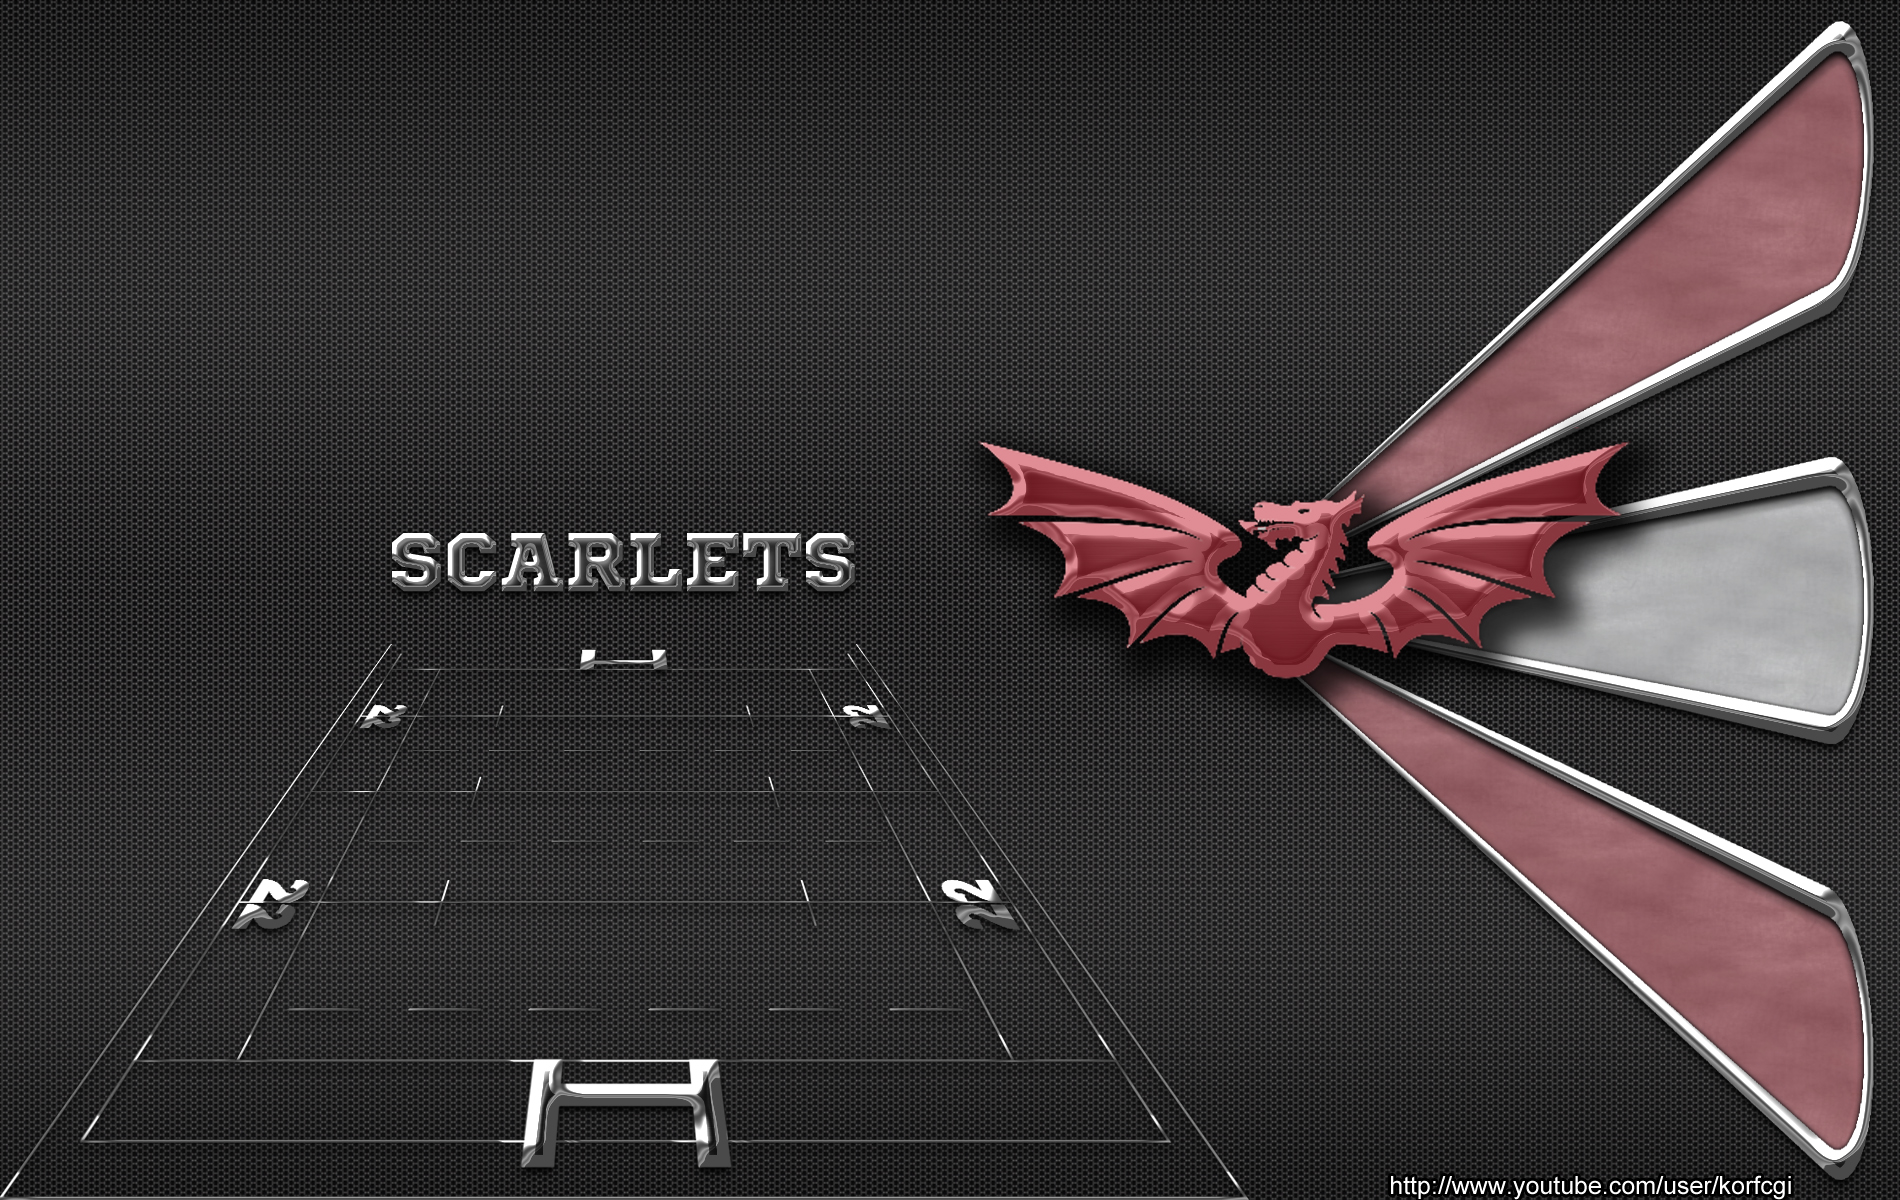 Welsh rugby clubs wallpapers by KorfCGI 1900x1200